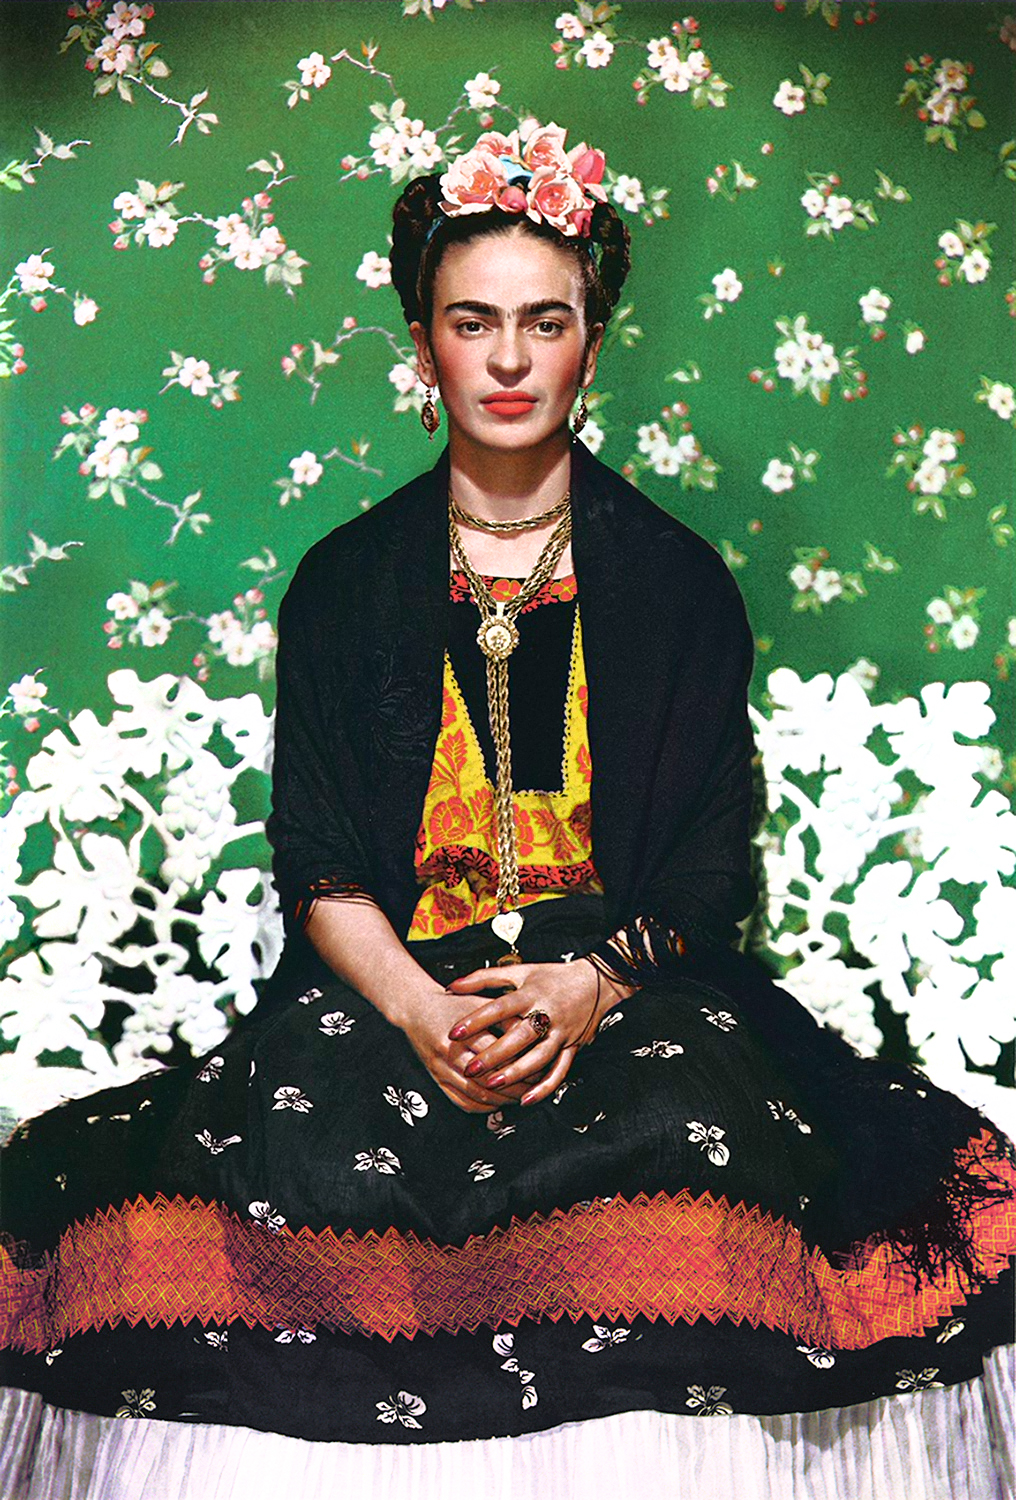 Frida Kahlo Vogue Portrait